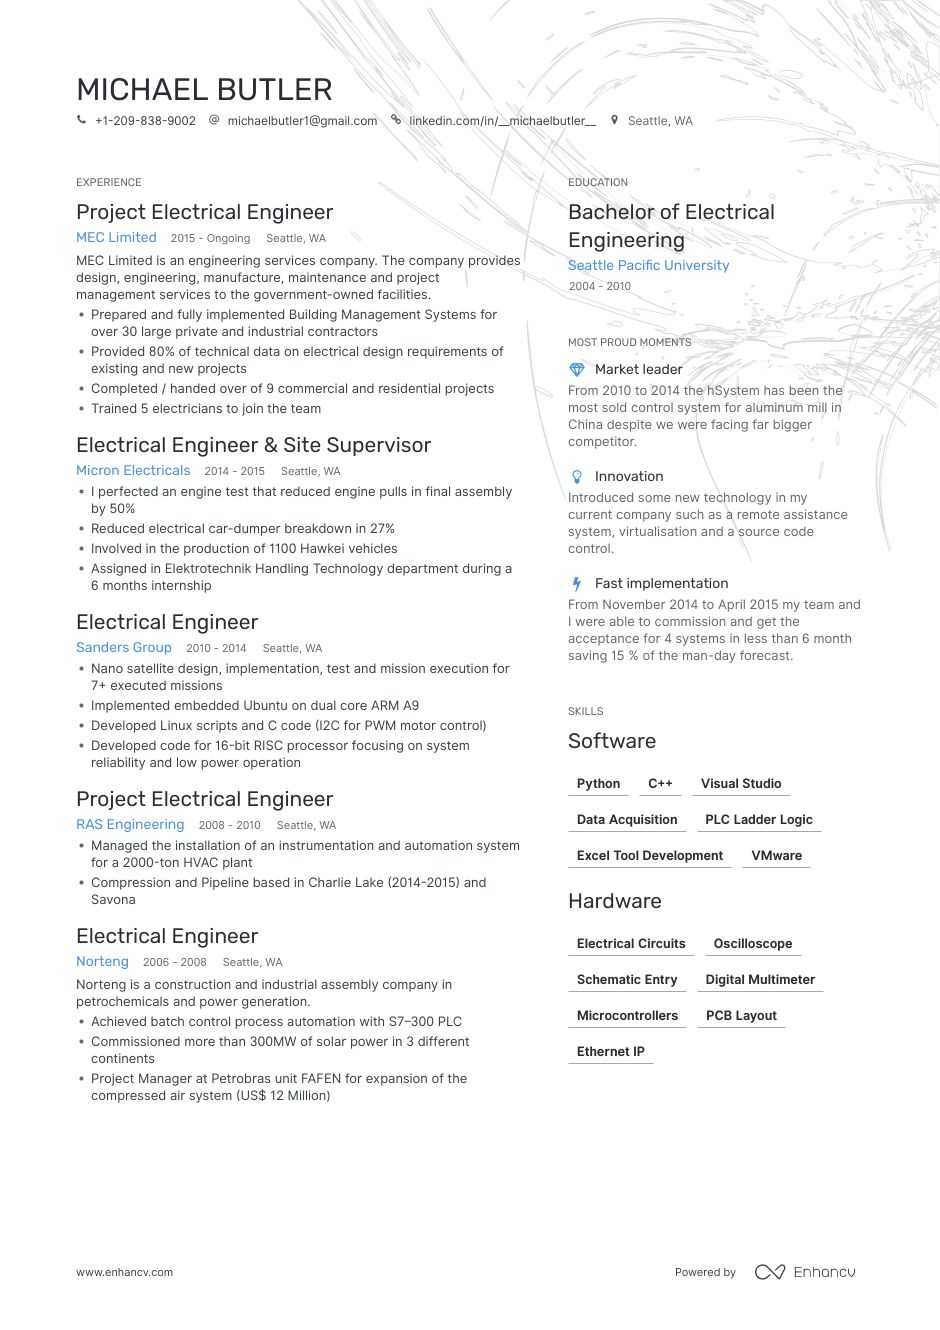 500 Free Professional Resume Examples And Samples For 2019